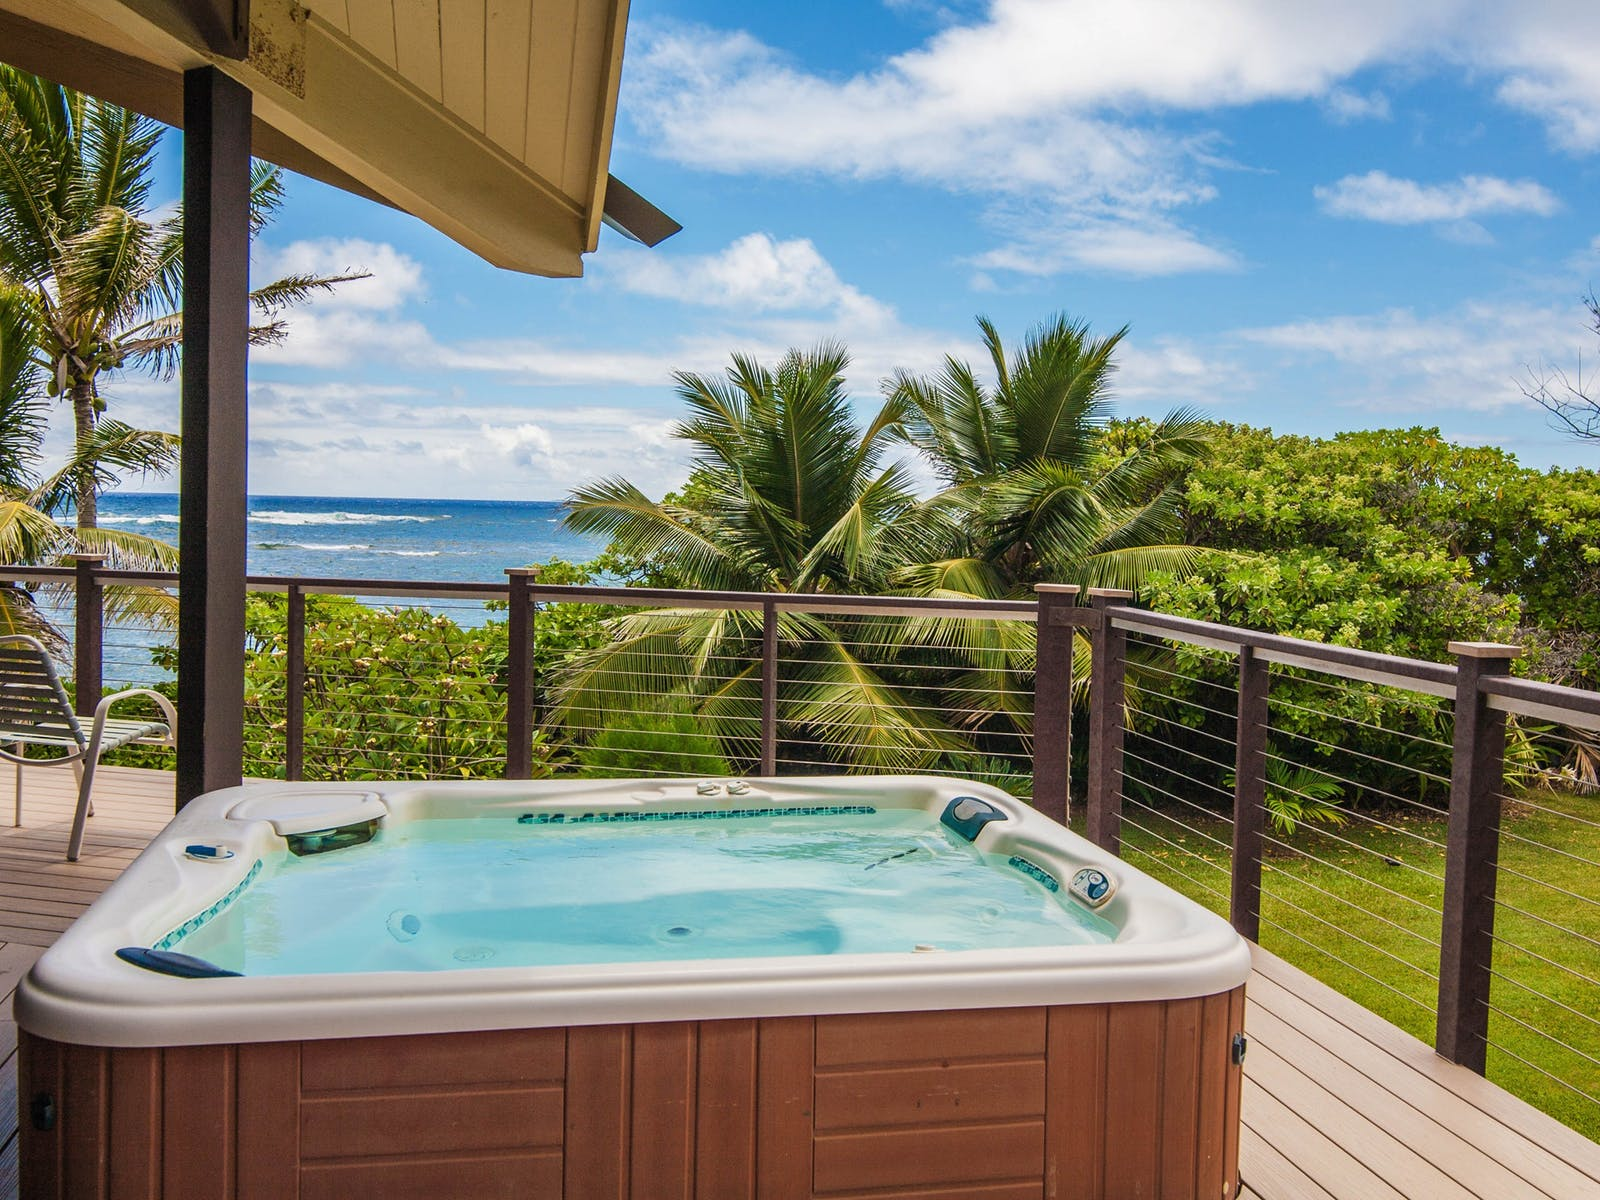 Private hot tub with beach and ocean views from Kauai, HI beach home